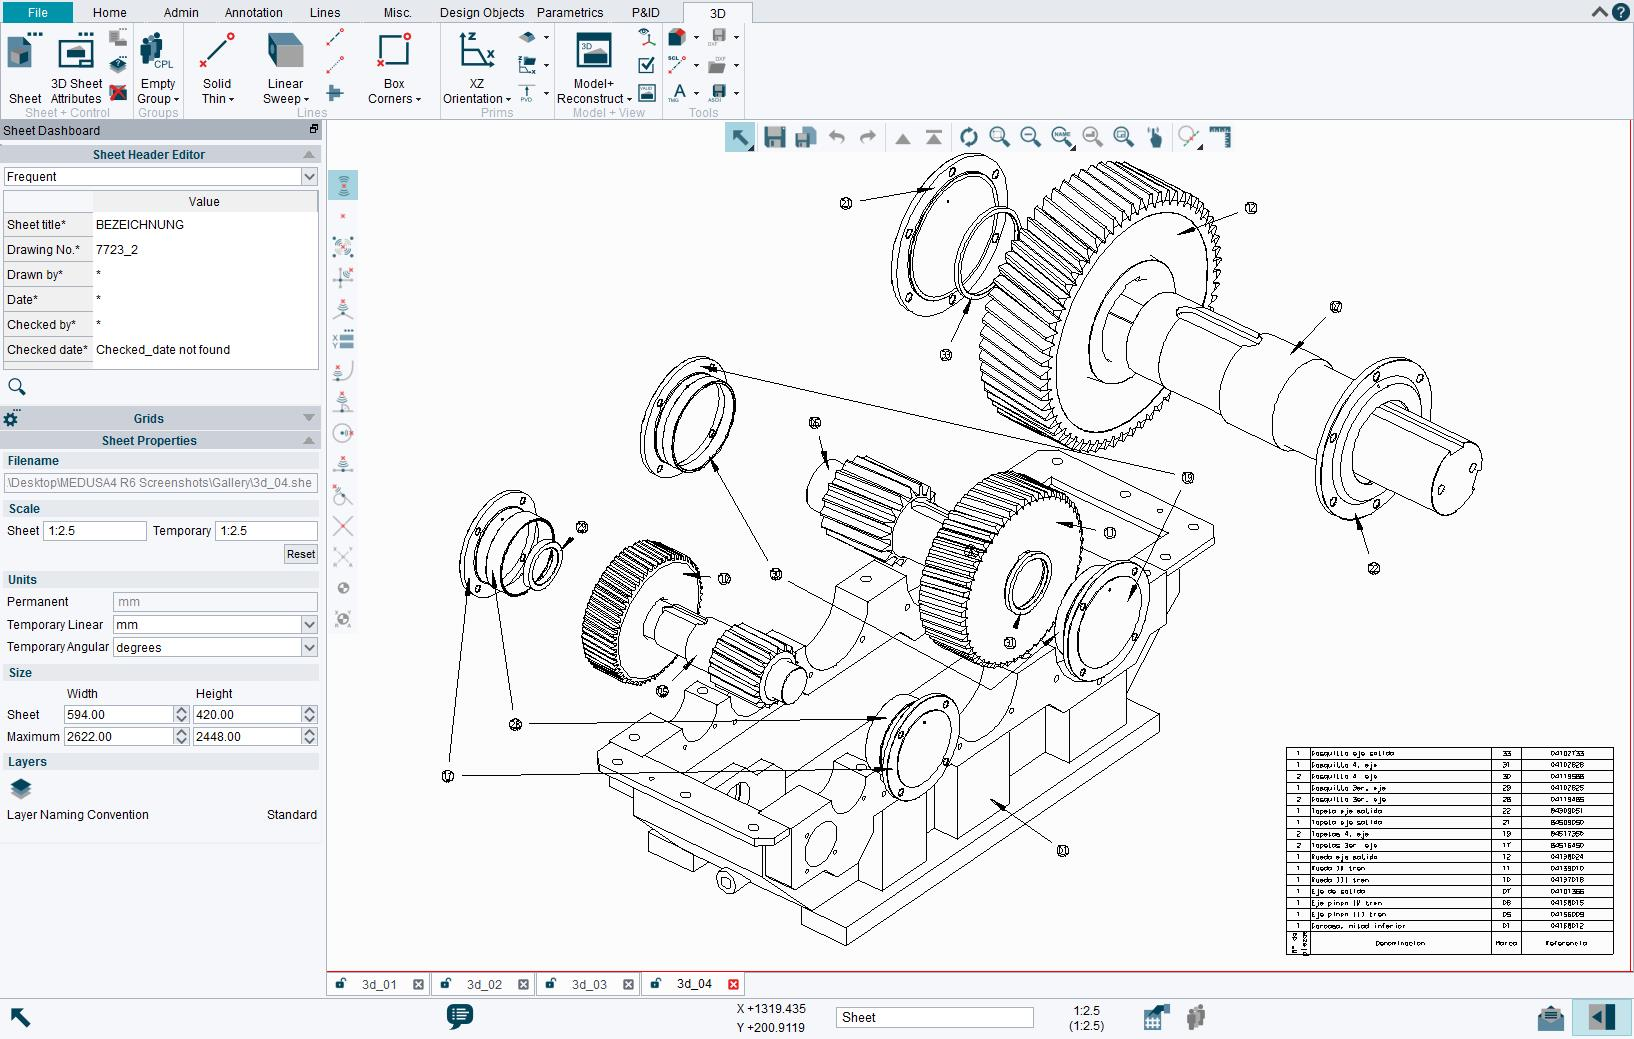 The 3D modelling tool offers an intuitive approach using standard 2D tools to define 3D models.